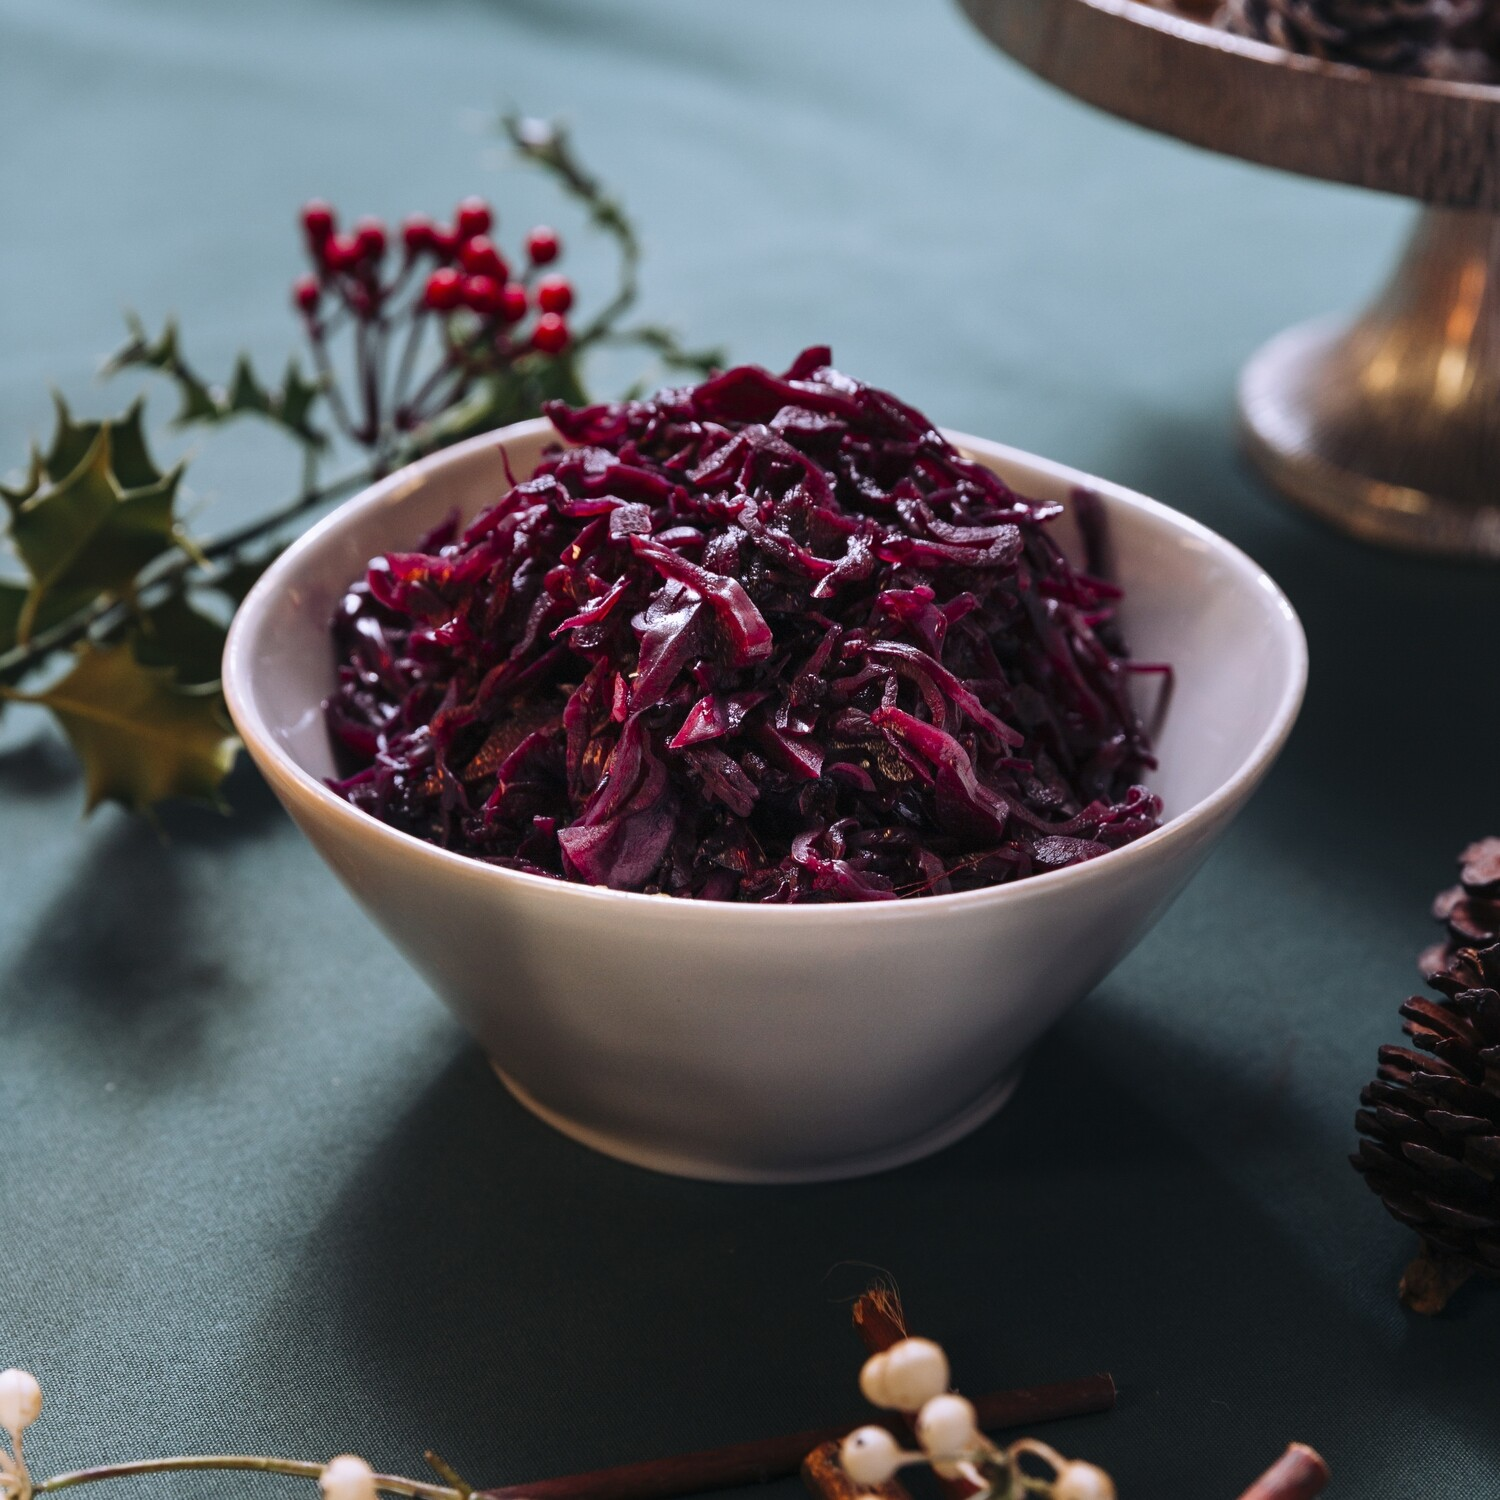 Slow Cooked Red Cabbage with Granny Smith Apples